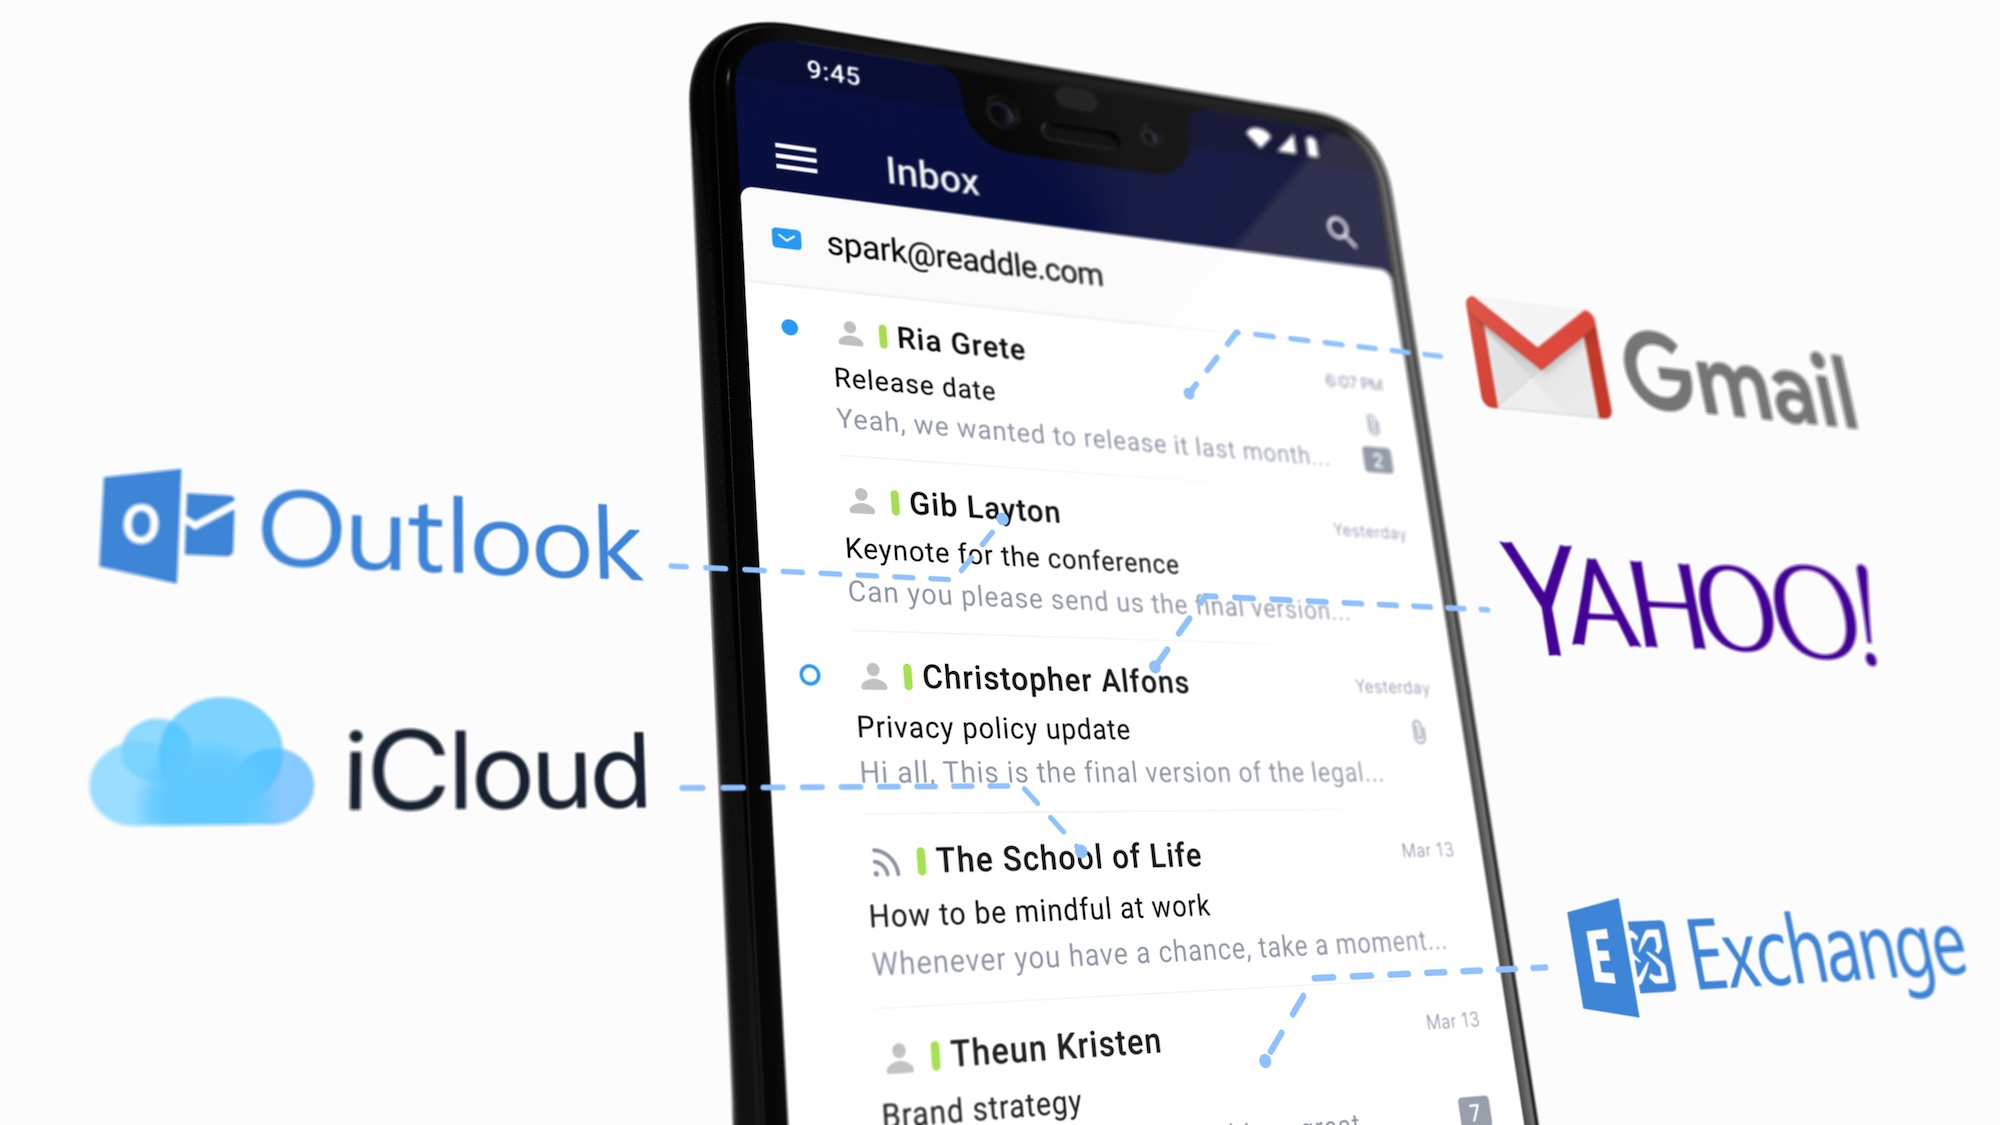 Readdle brings free Spark email app to Android, promises no ads or